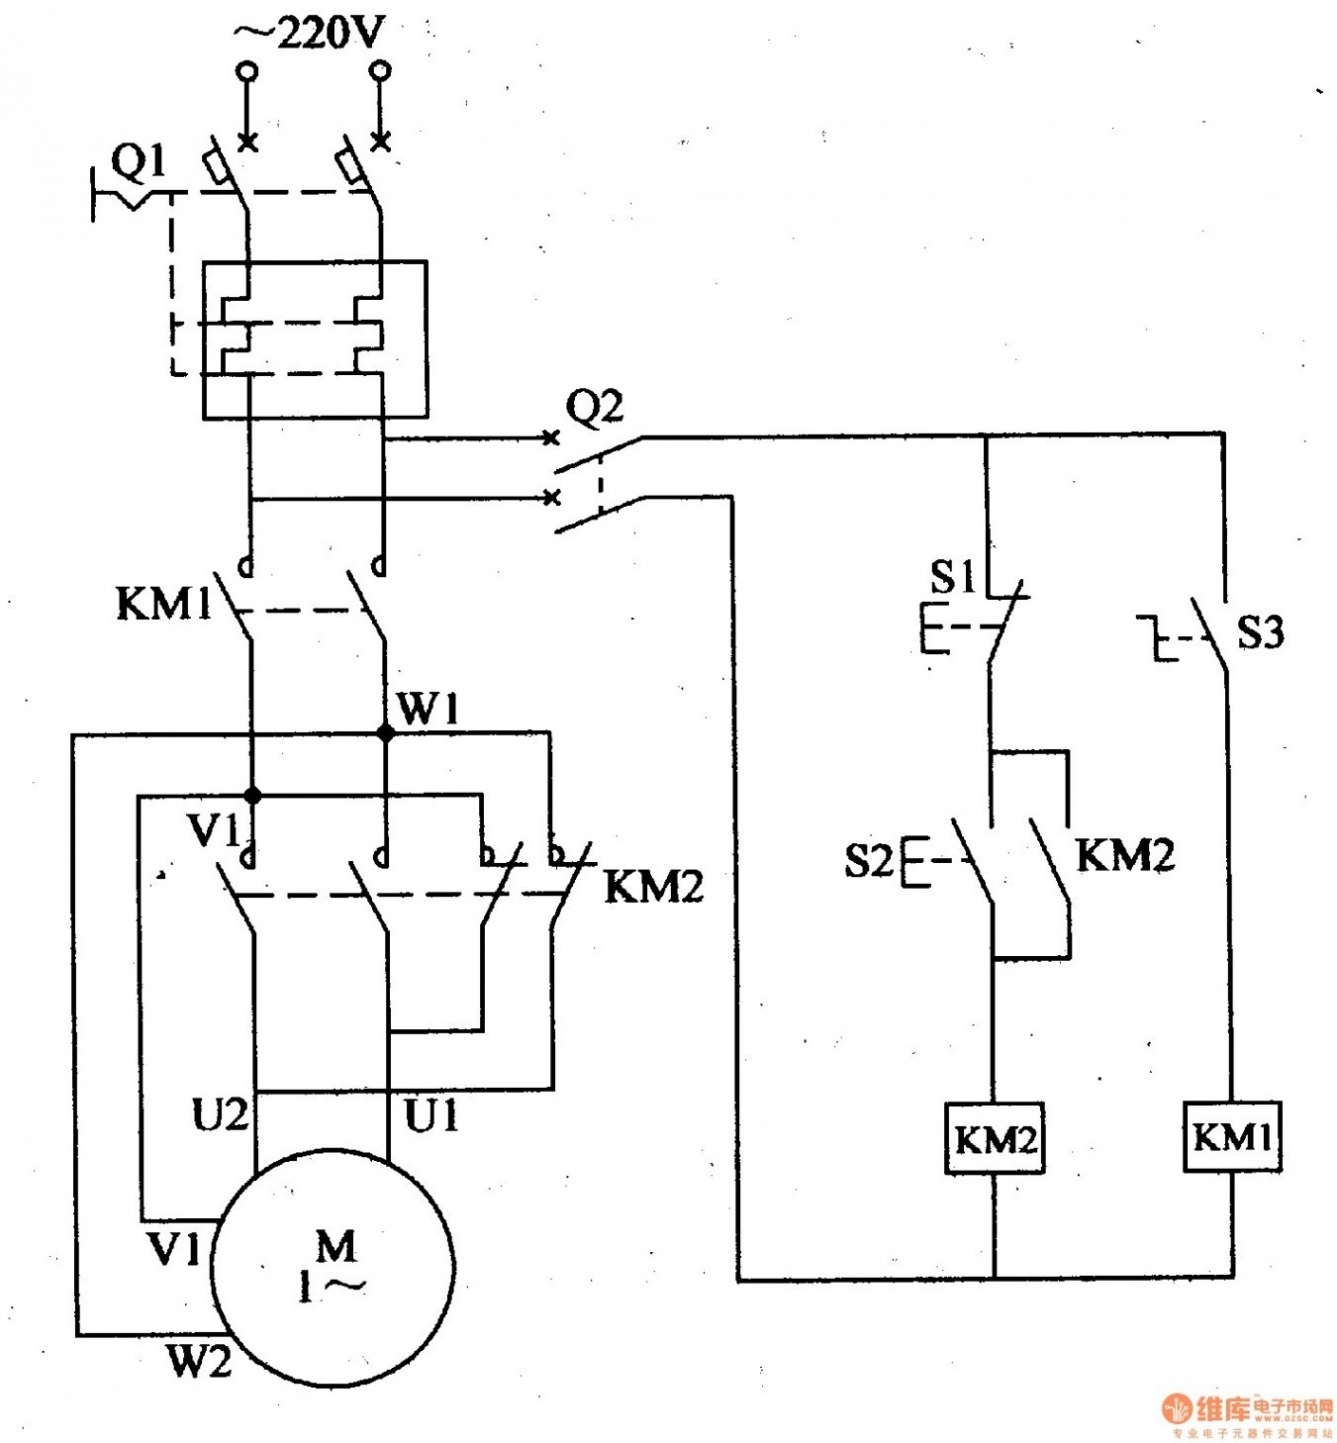 single phase capacitor start motor wiring diagrams file name